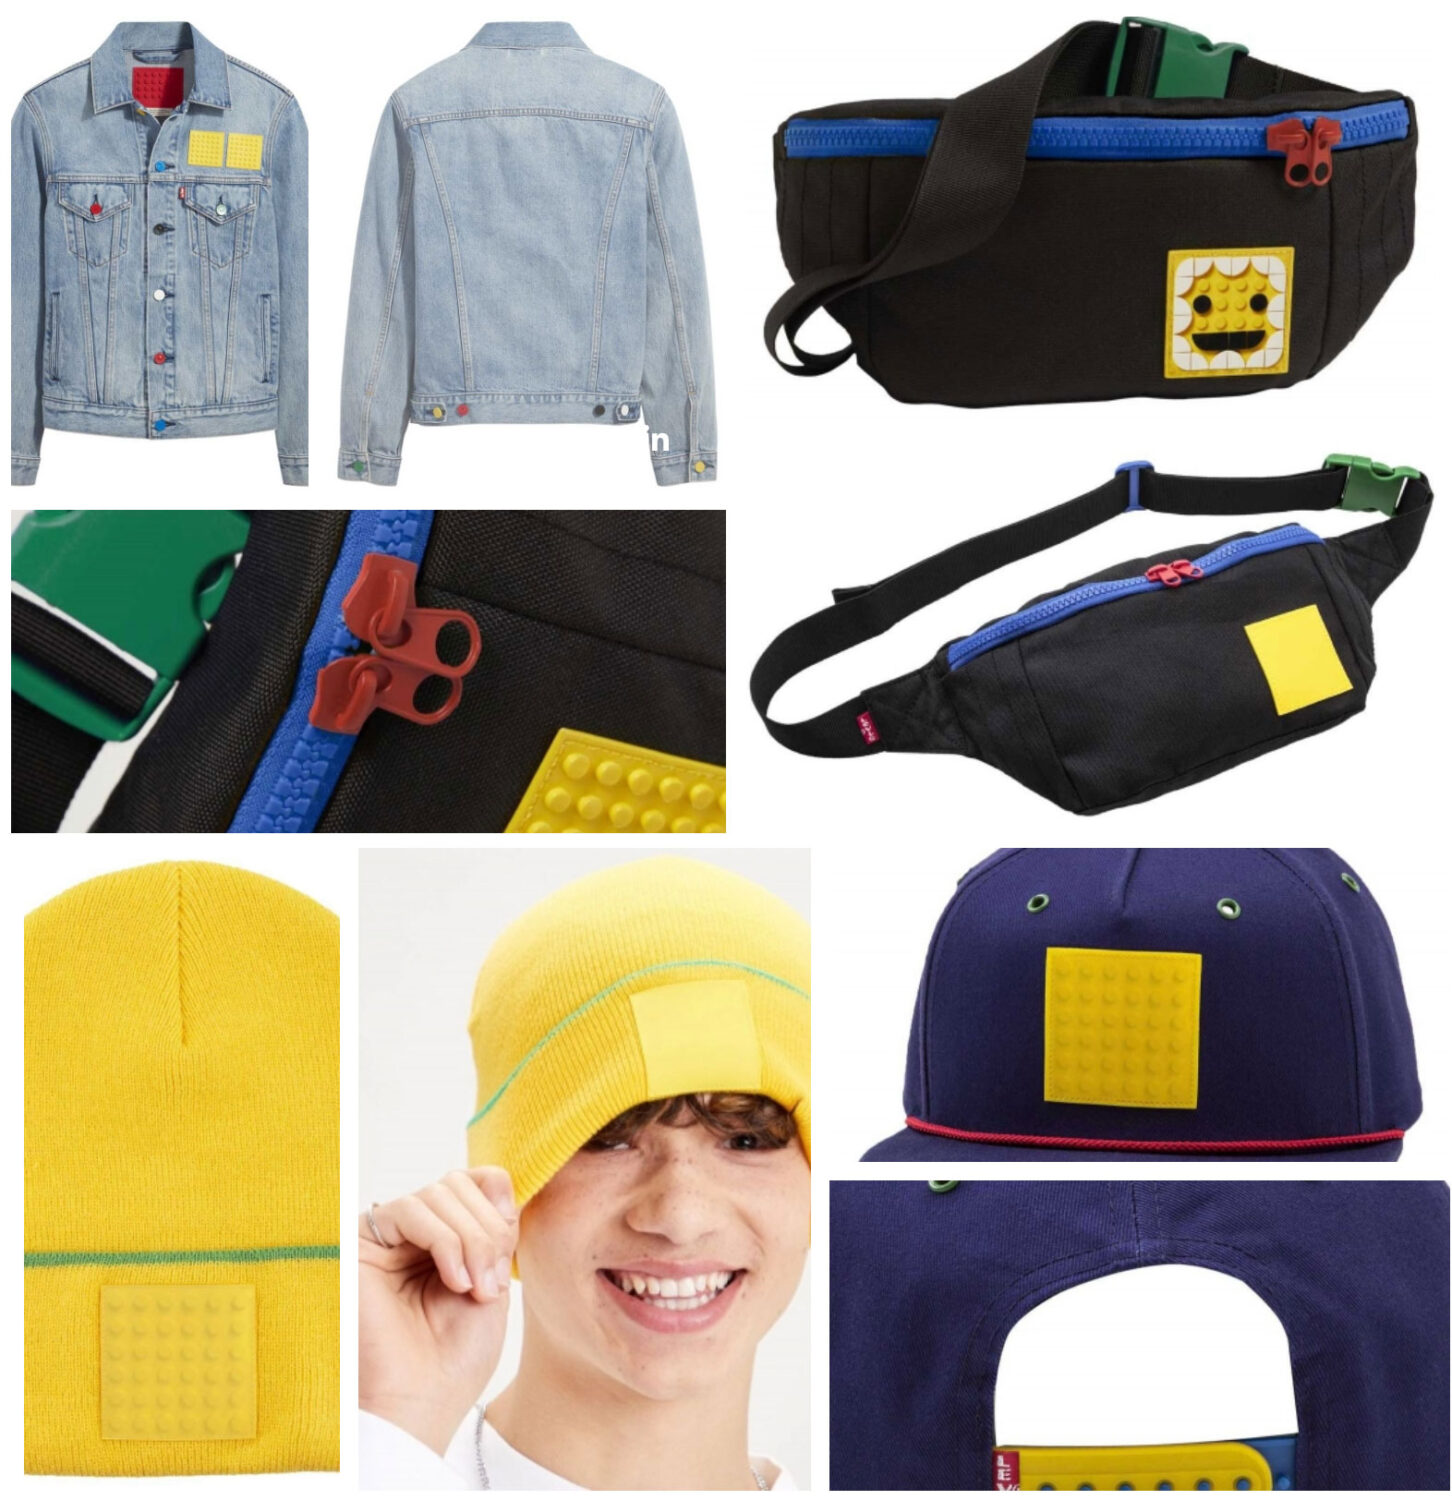 LEGO LEVI's products